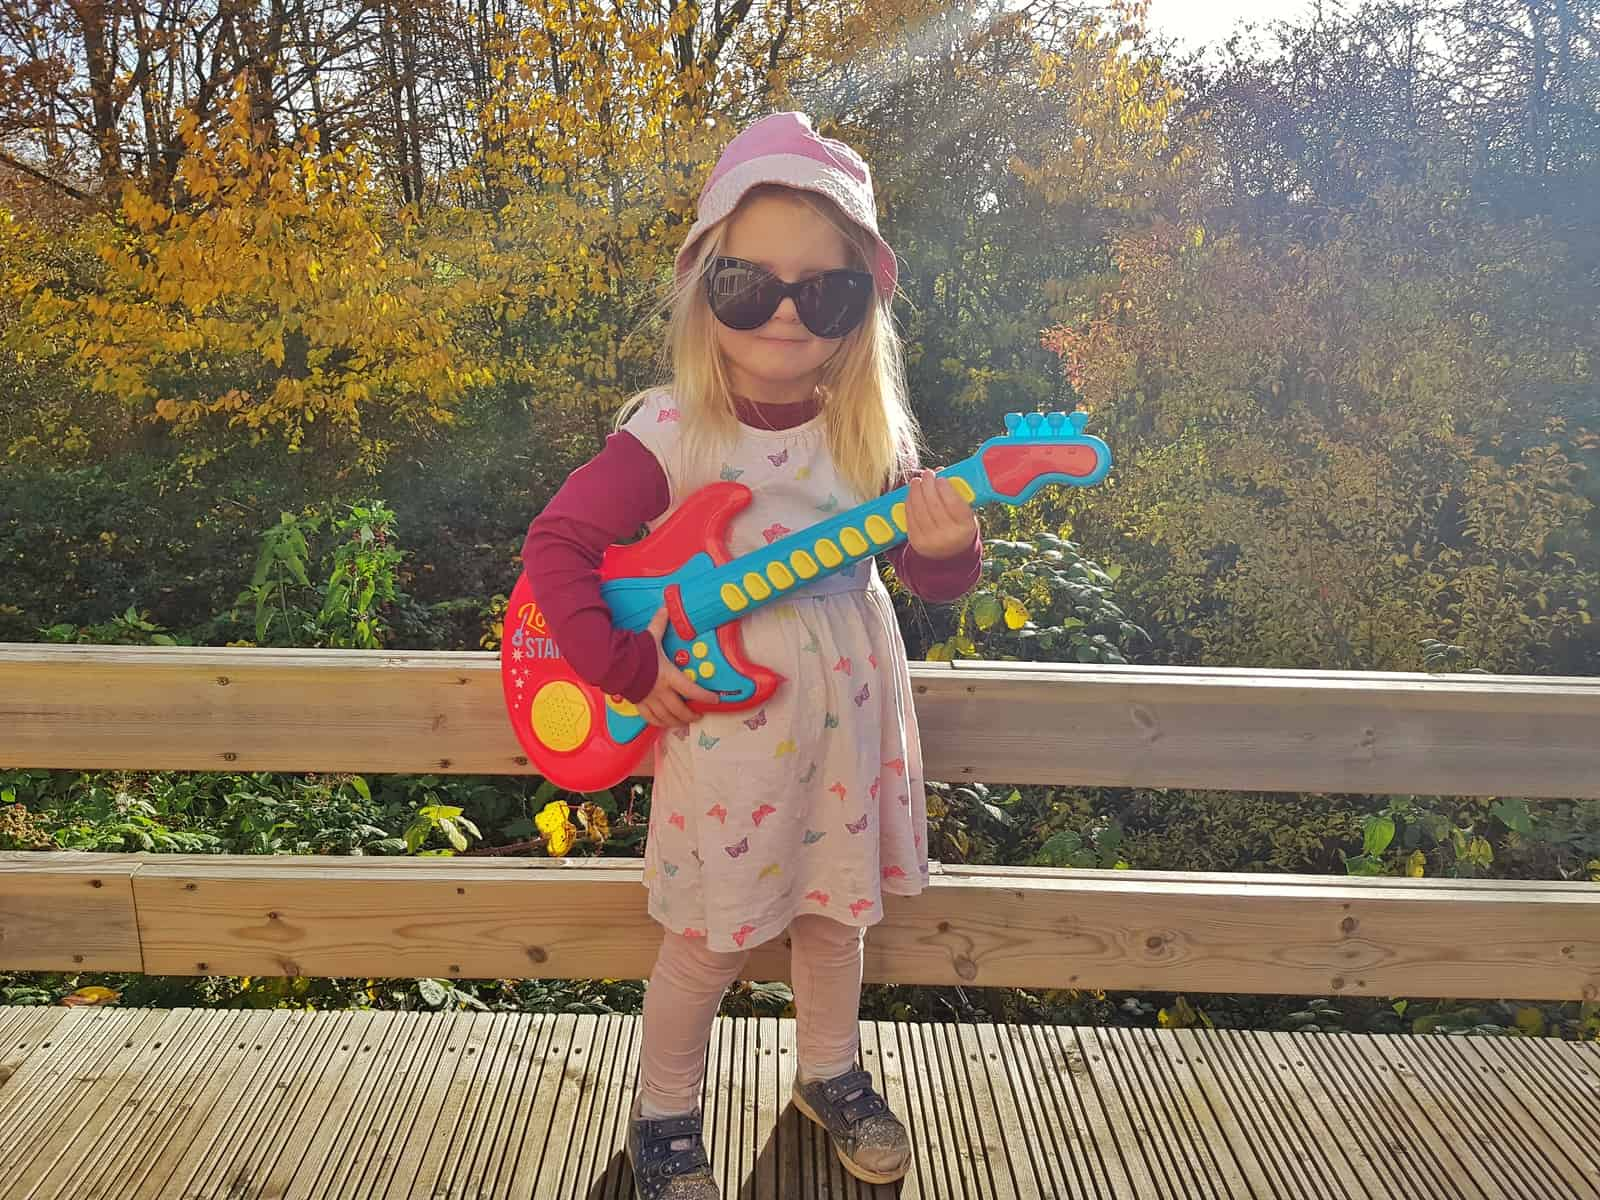 3 year old girl with red and blue plastic guitar